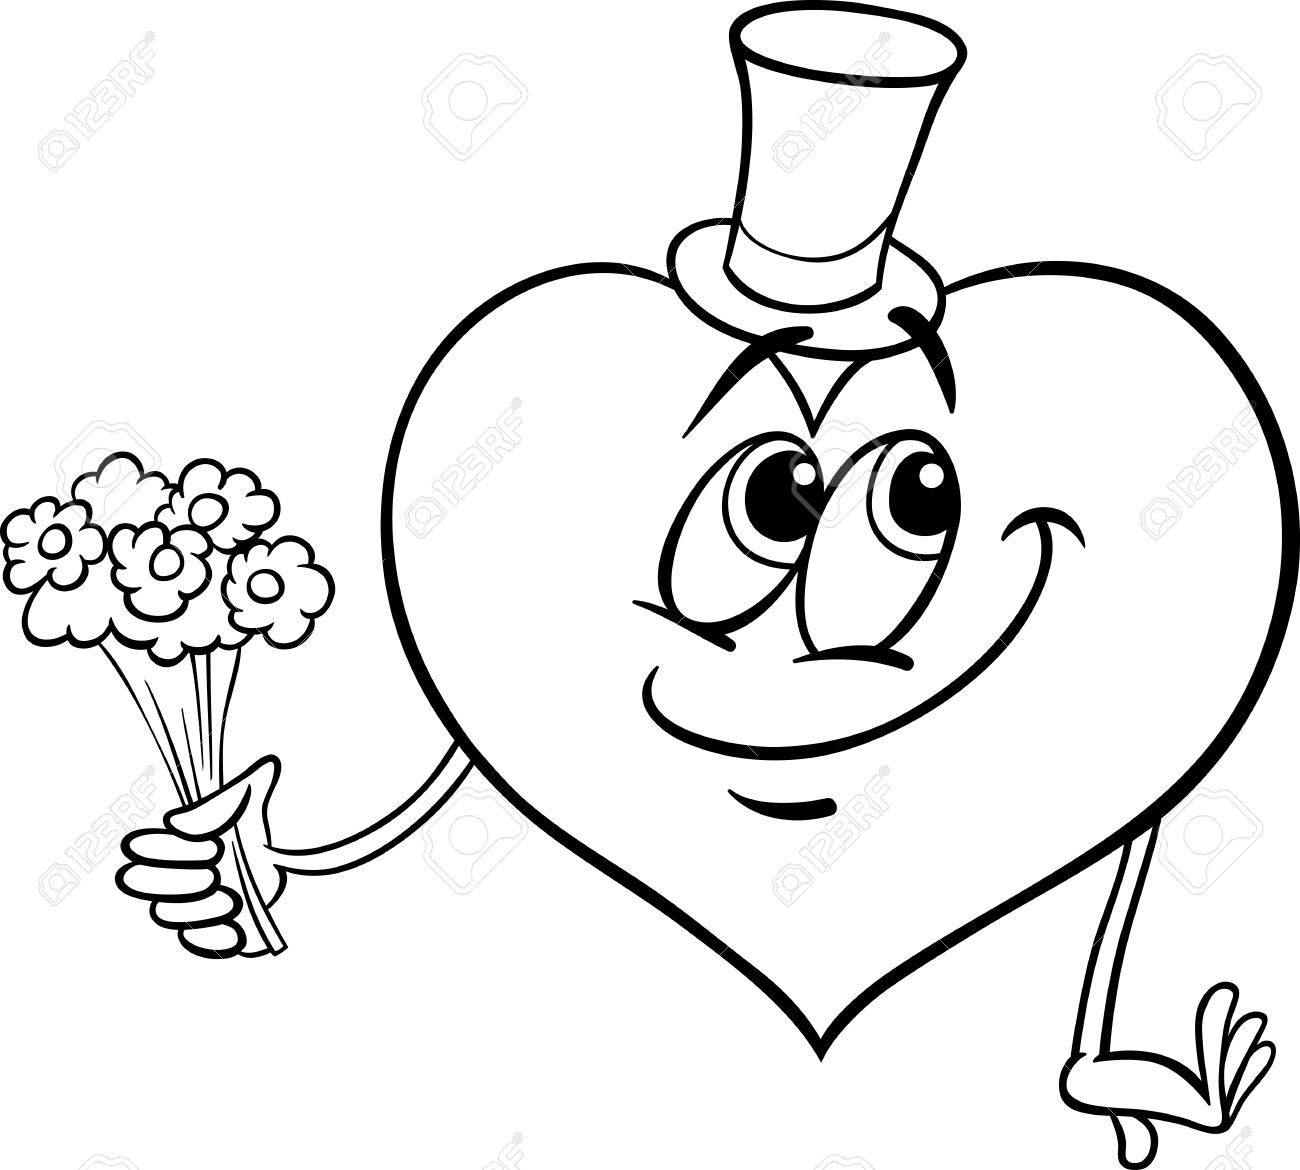 Black And White Cartoon Illustration Of Happy Heart Character